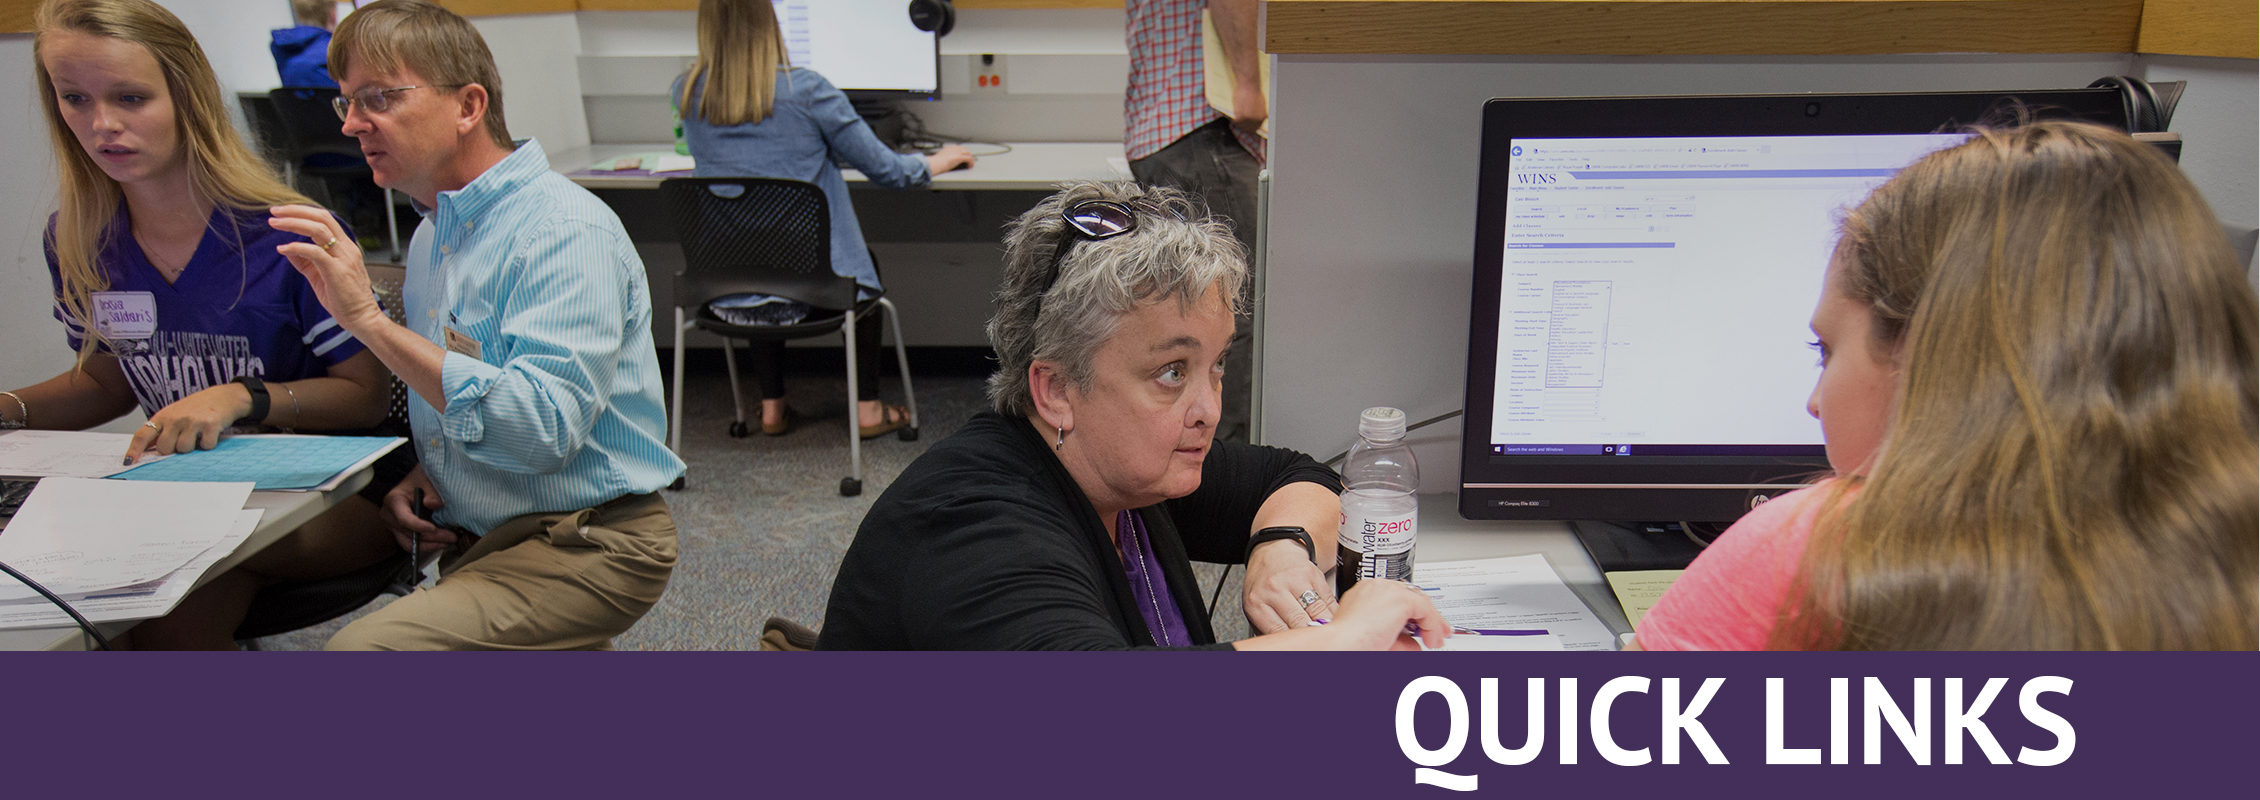 Quick Links: Instructors helping students, one at a computer